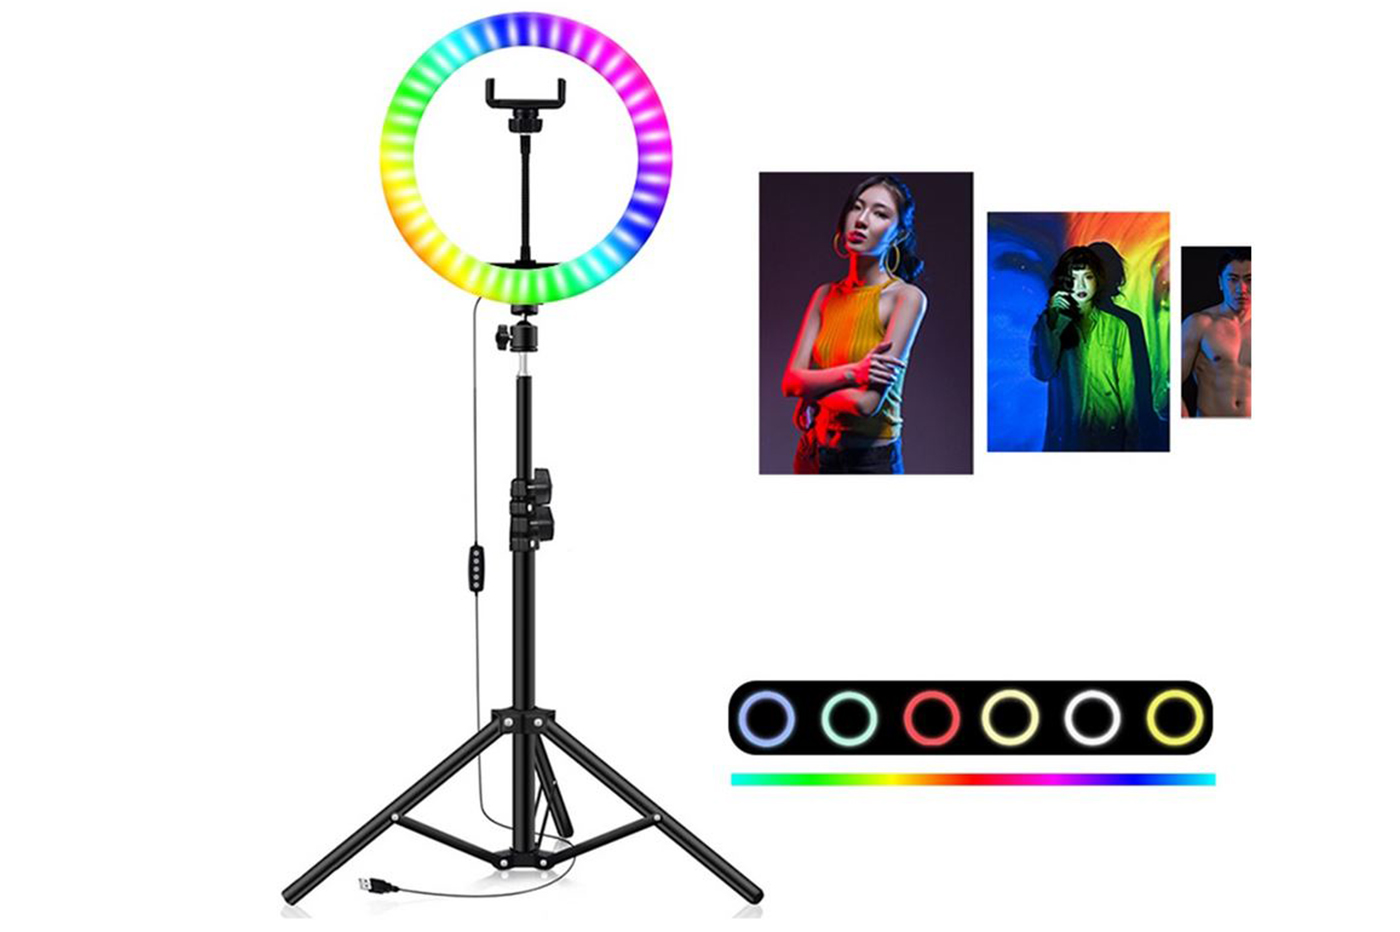 Anello luminoso led multicolor treppiede 33cm supporto cellulare selfie video